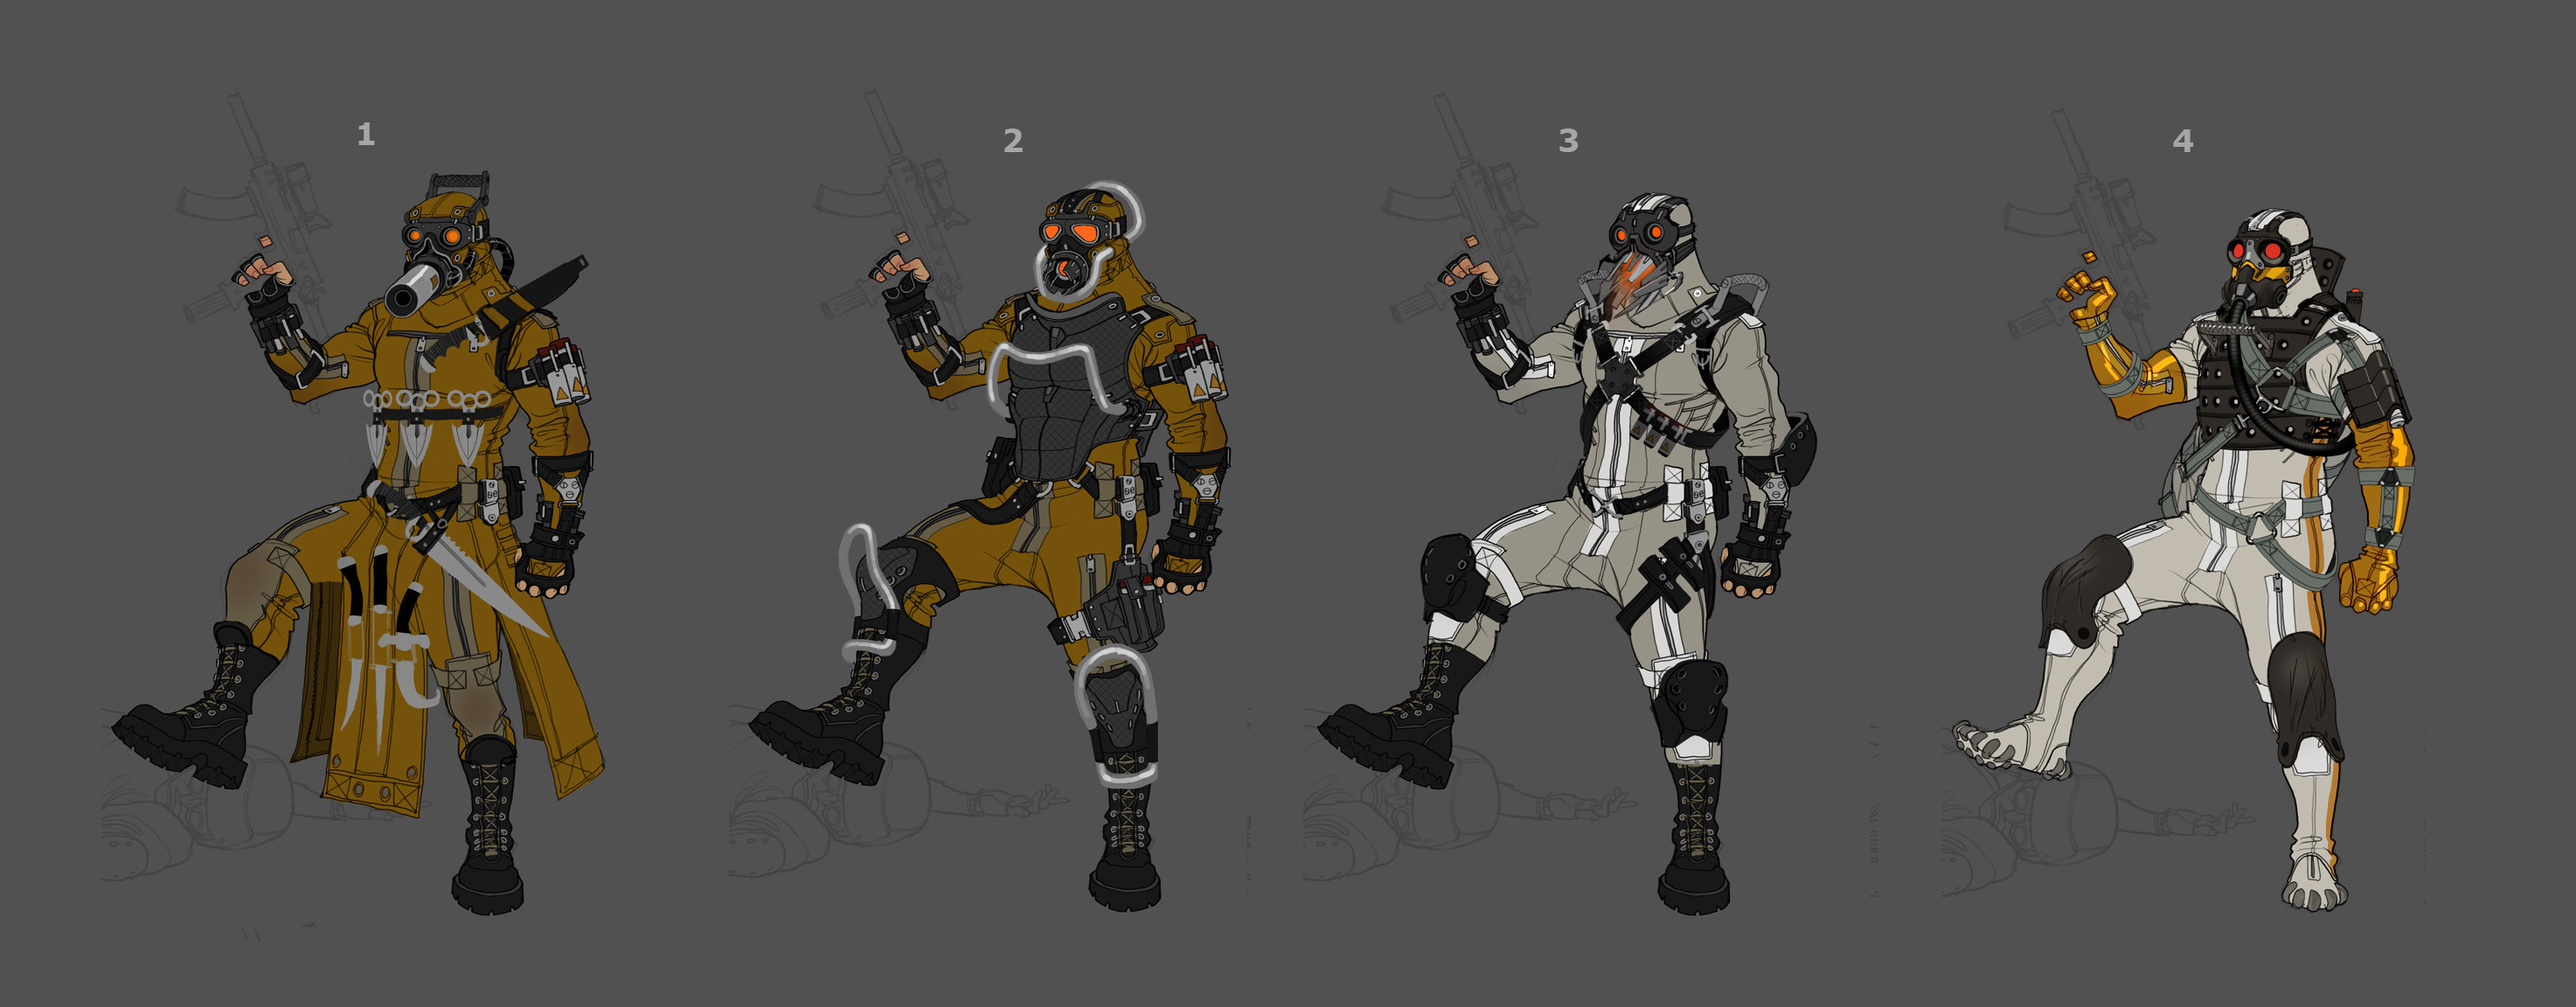 Variations on the ISA soldier